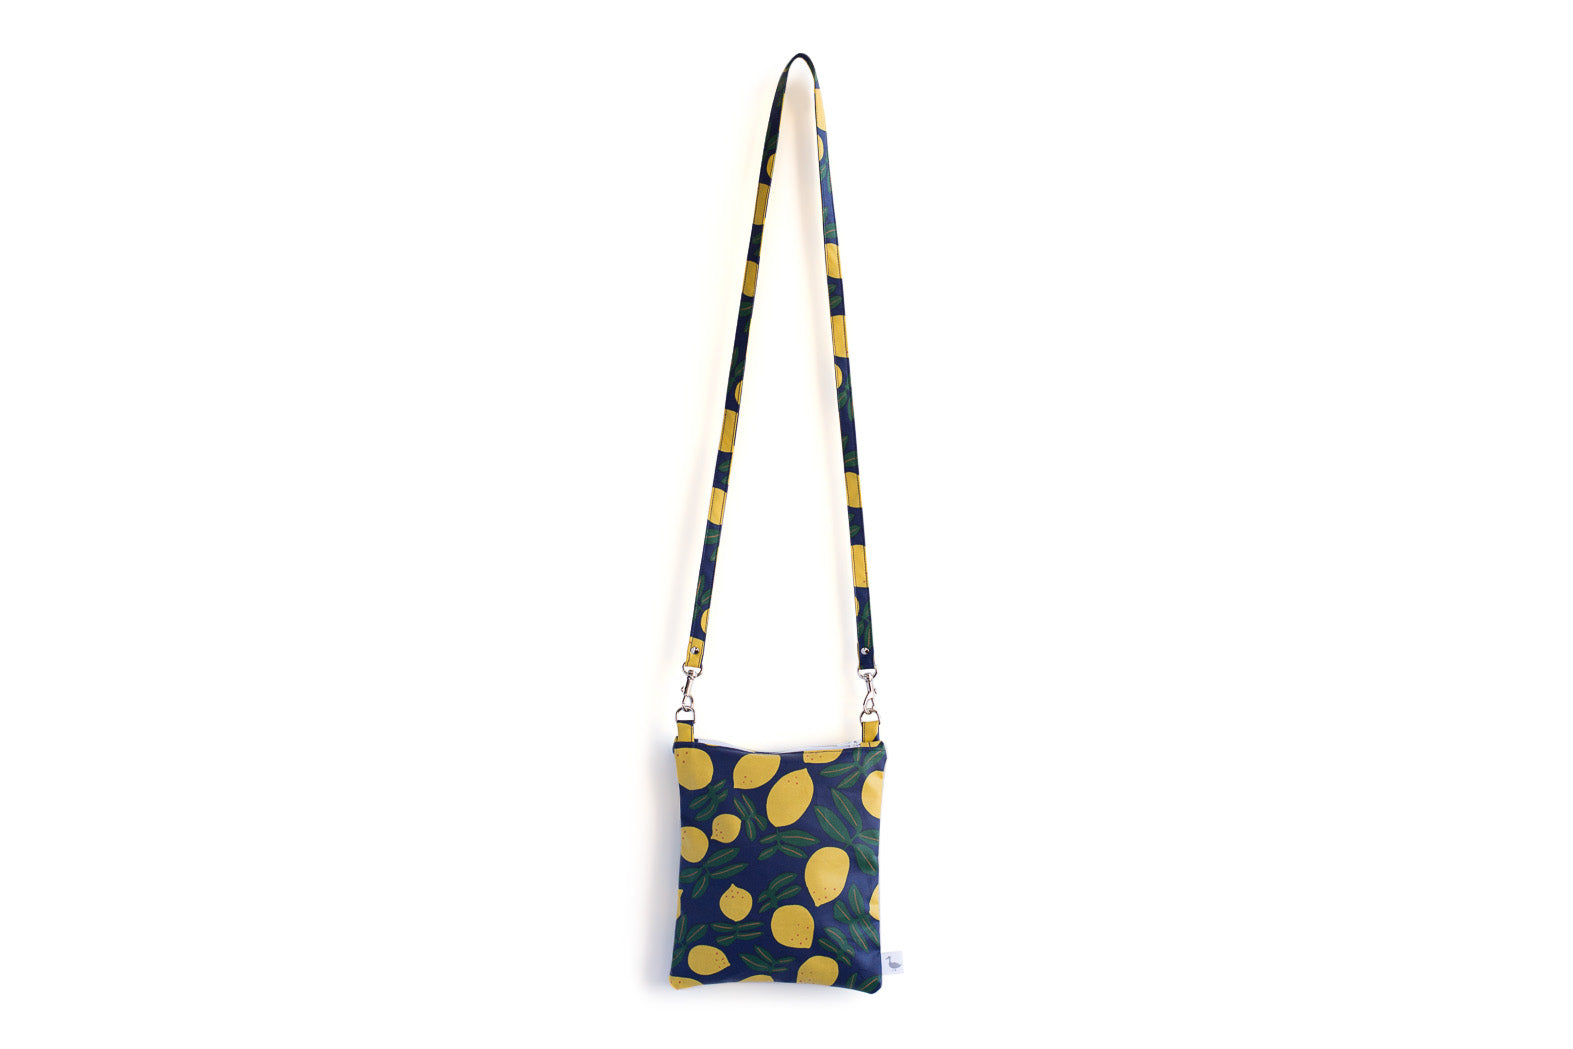 Small Cross Body Bag with Bright Blue with Yellow Lemons Fabric